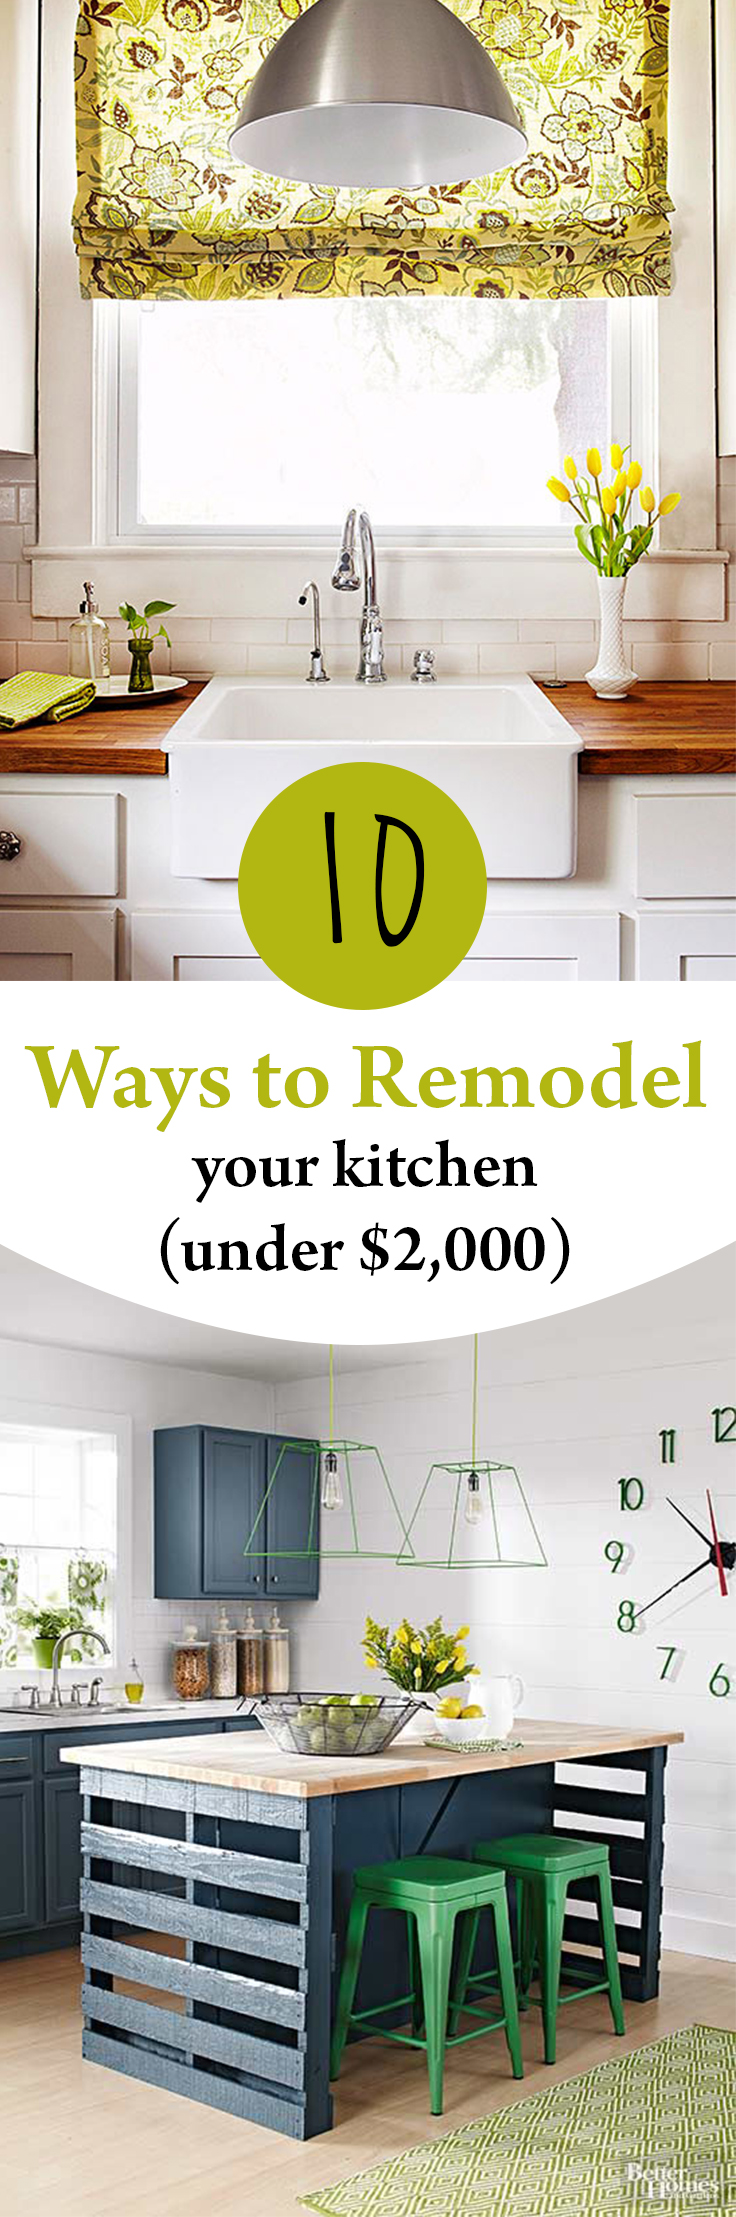 Kitchen, Kitchen Remodel, Cheap Kitchen Remodeling, DIY Kitchen Remodel, Kitchen Remodel Tips, Kitchen Remodel Tricks, Kitchen Remodeling Hacks, Easy Ways to Remodel Your Kitchen, How to Update Your Kitchen, Popular